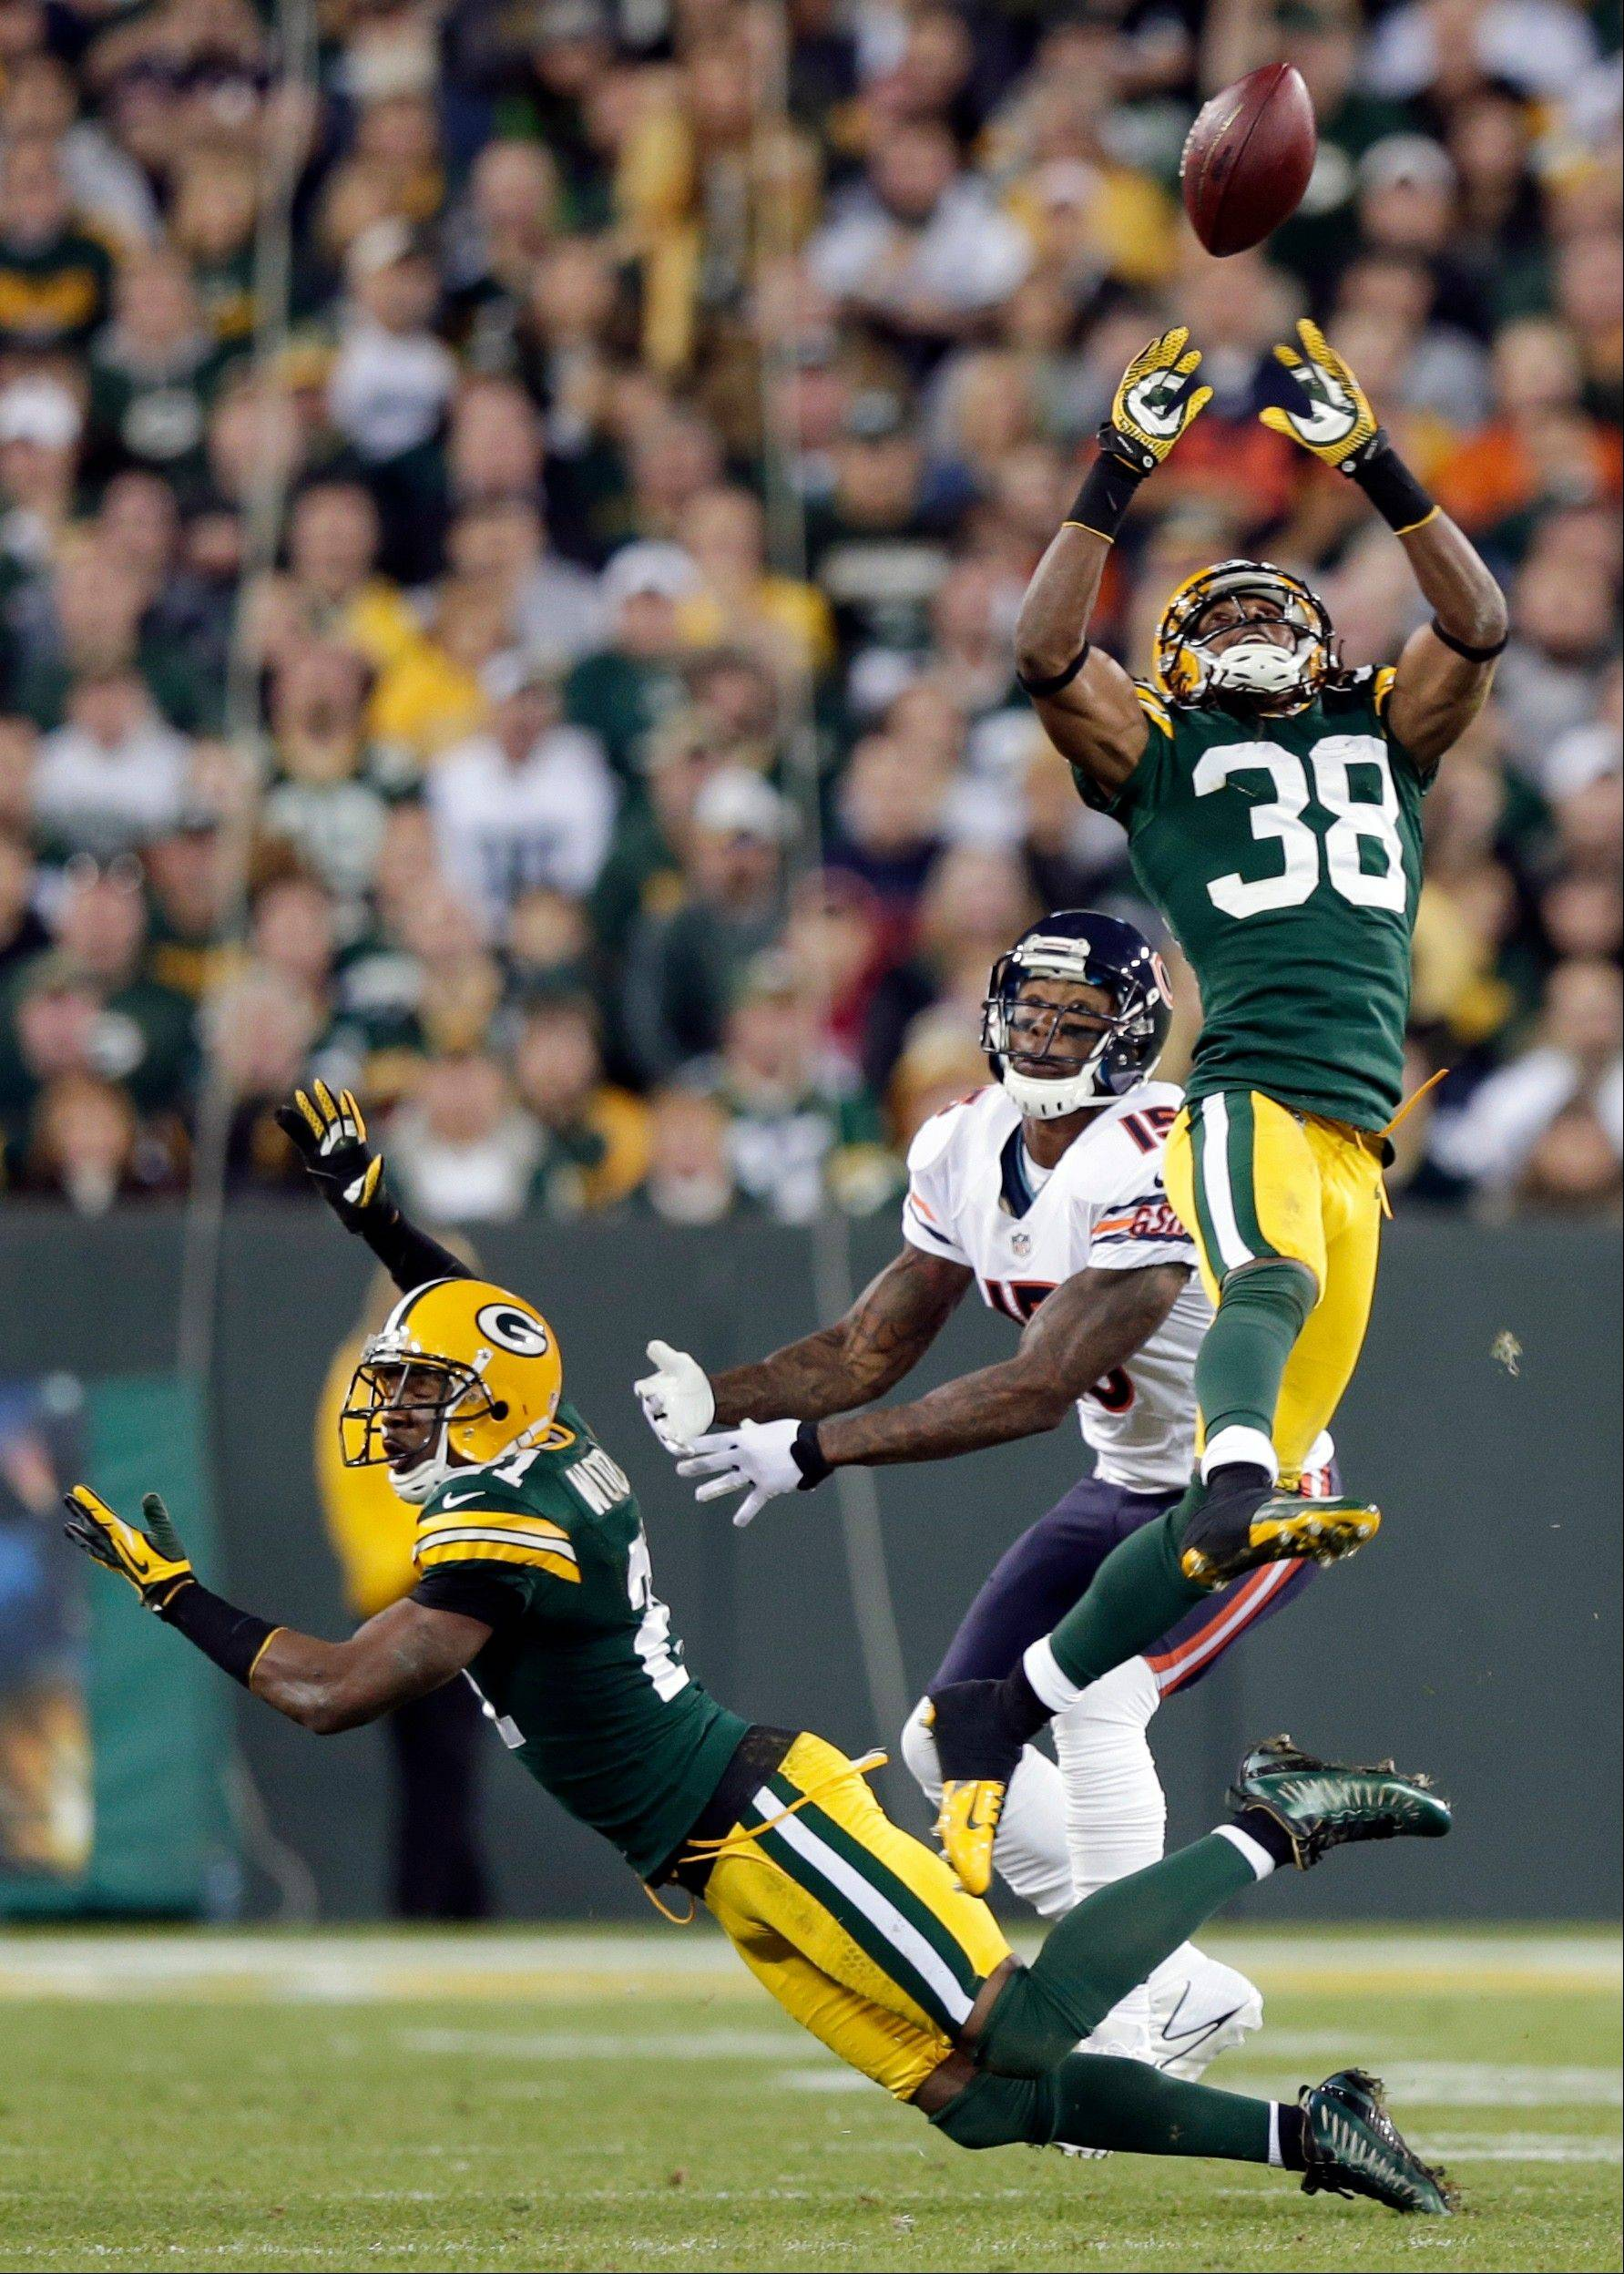 Green Bay Packers' Tramon Williams intercepts a pass in front of Chicago Bears' Brandon Marshall and Charles Woodson during the second half.